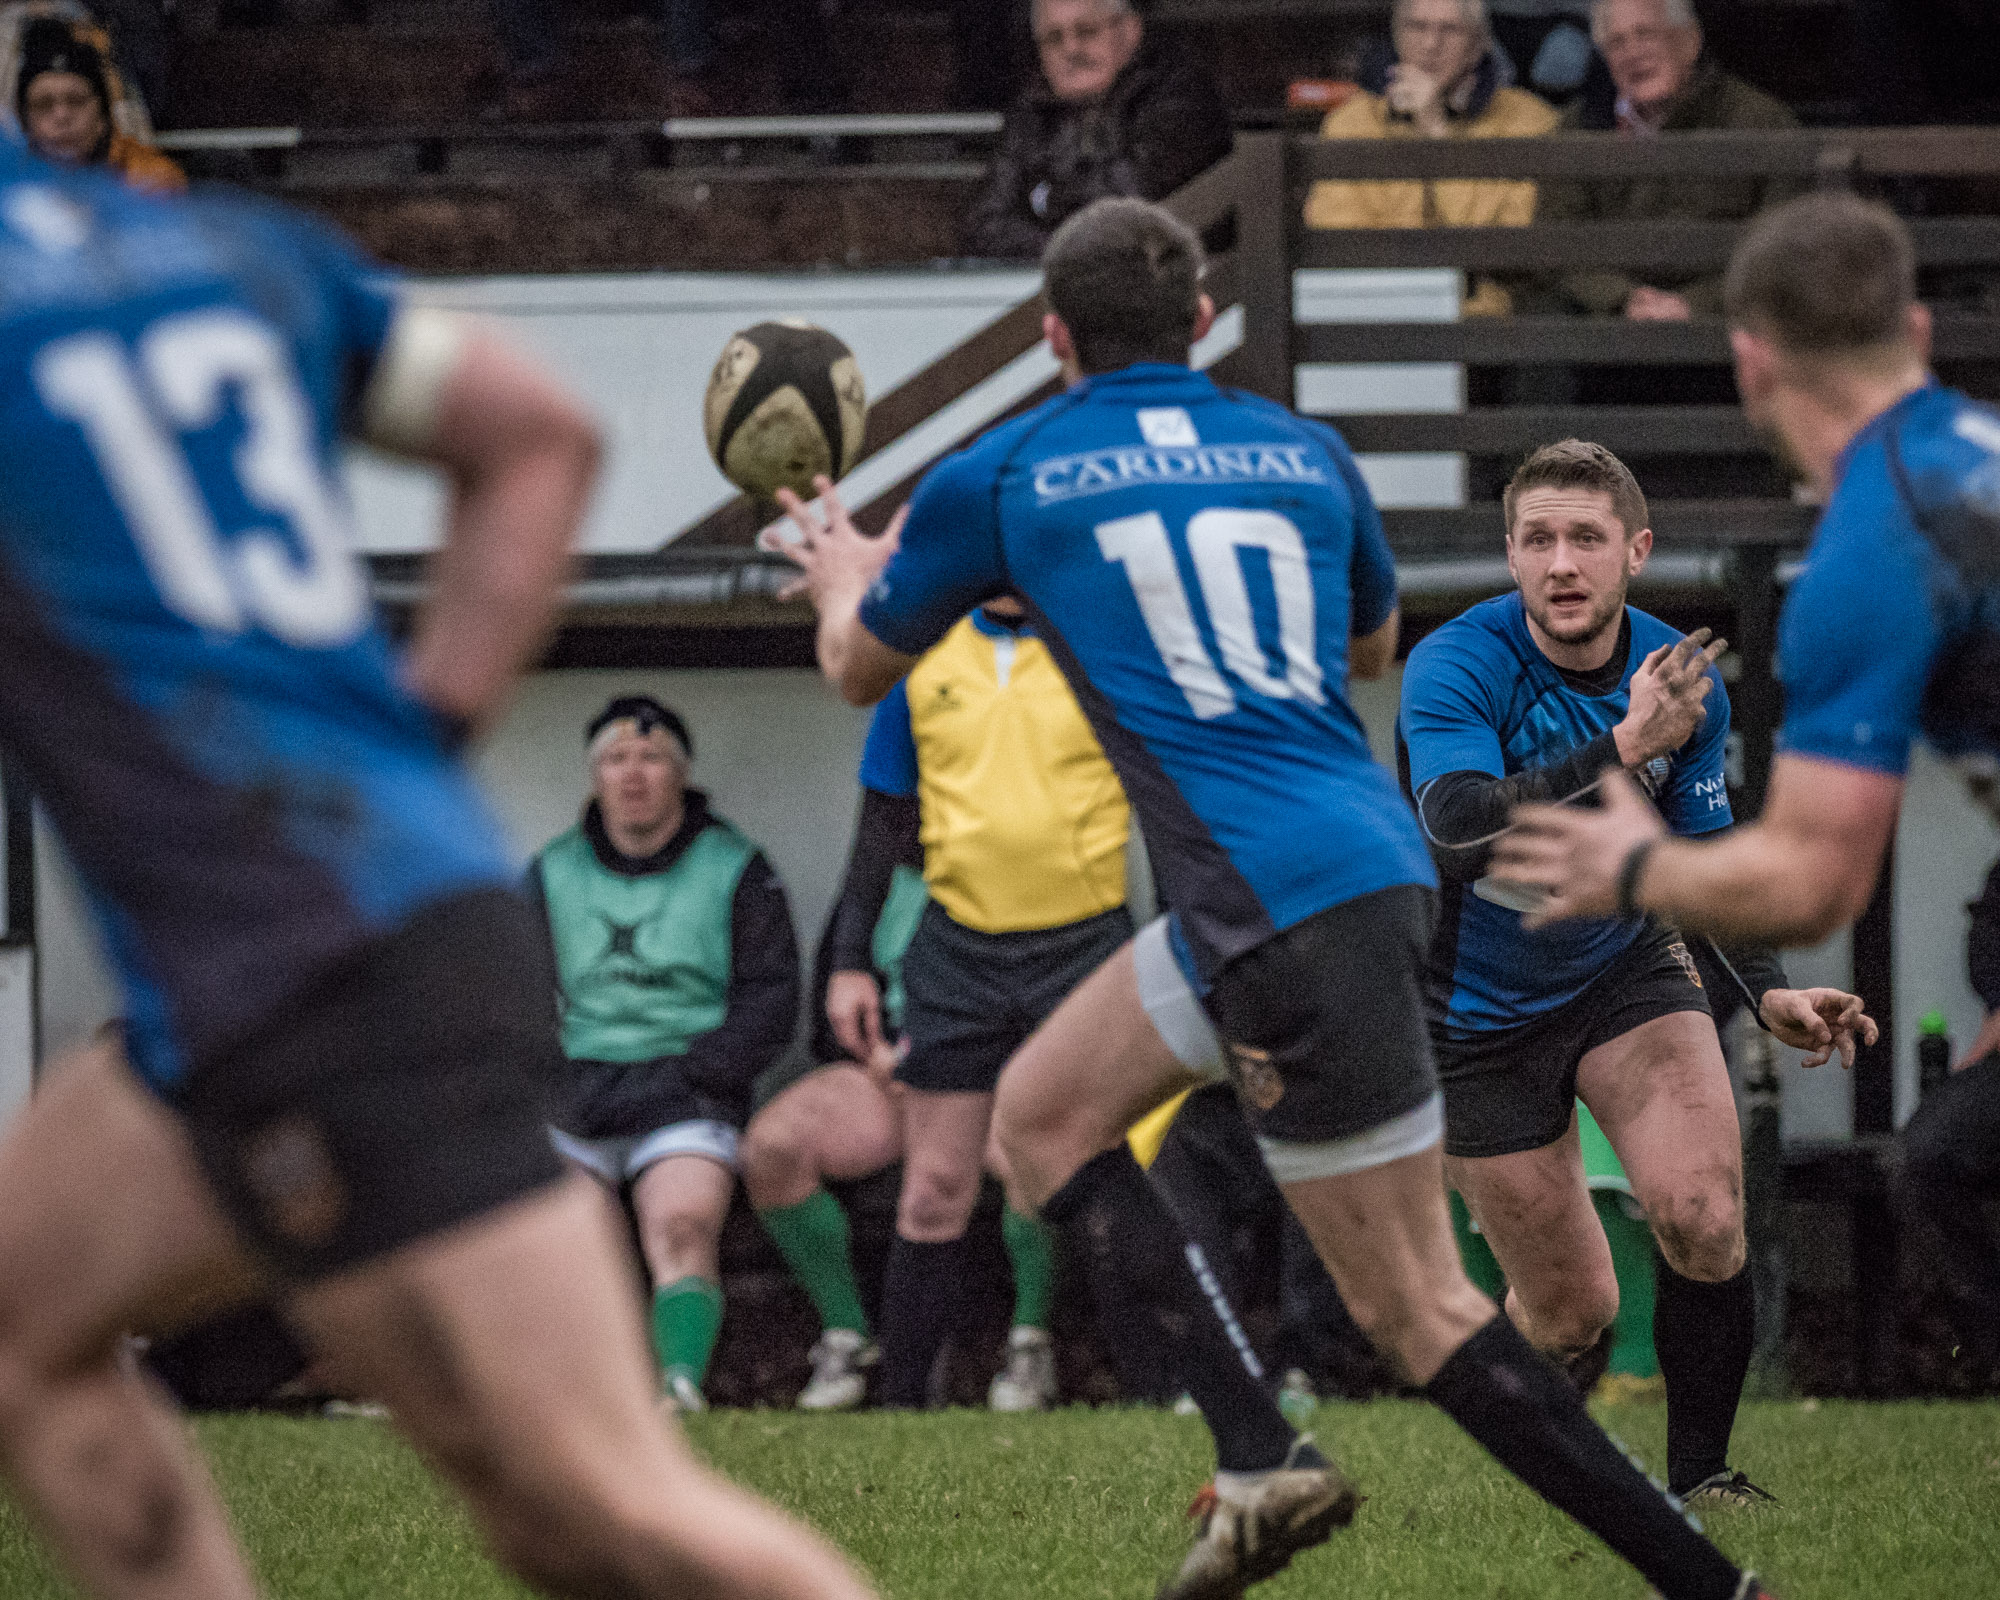 Pass from Otley scrum half (and try scorer) Joe Rowntree. Like the way he can be seen between the receiver and another team mate.